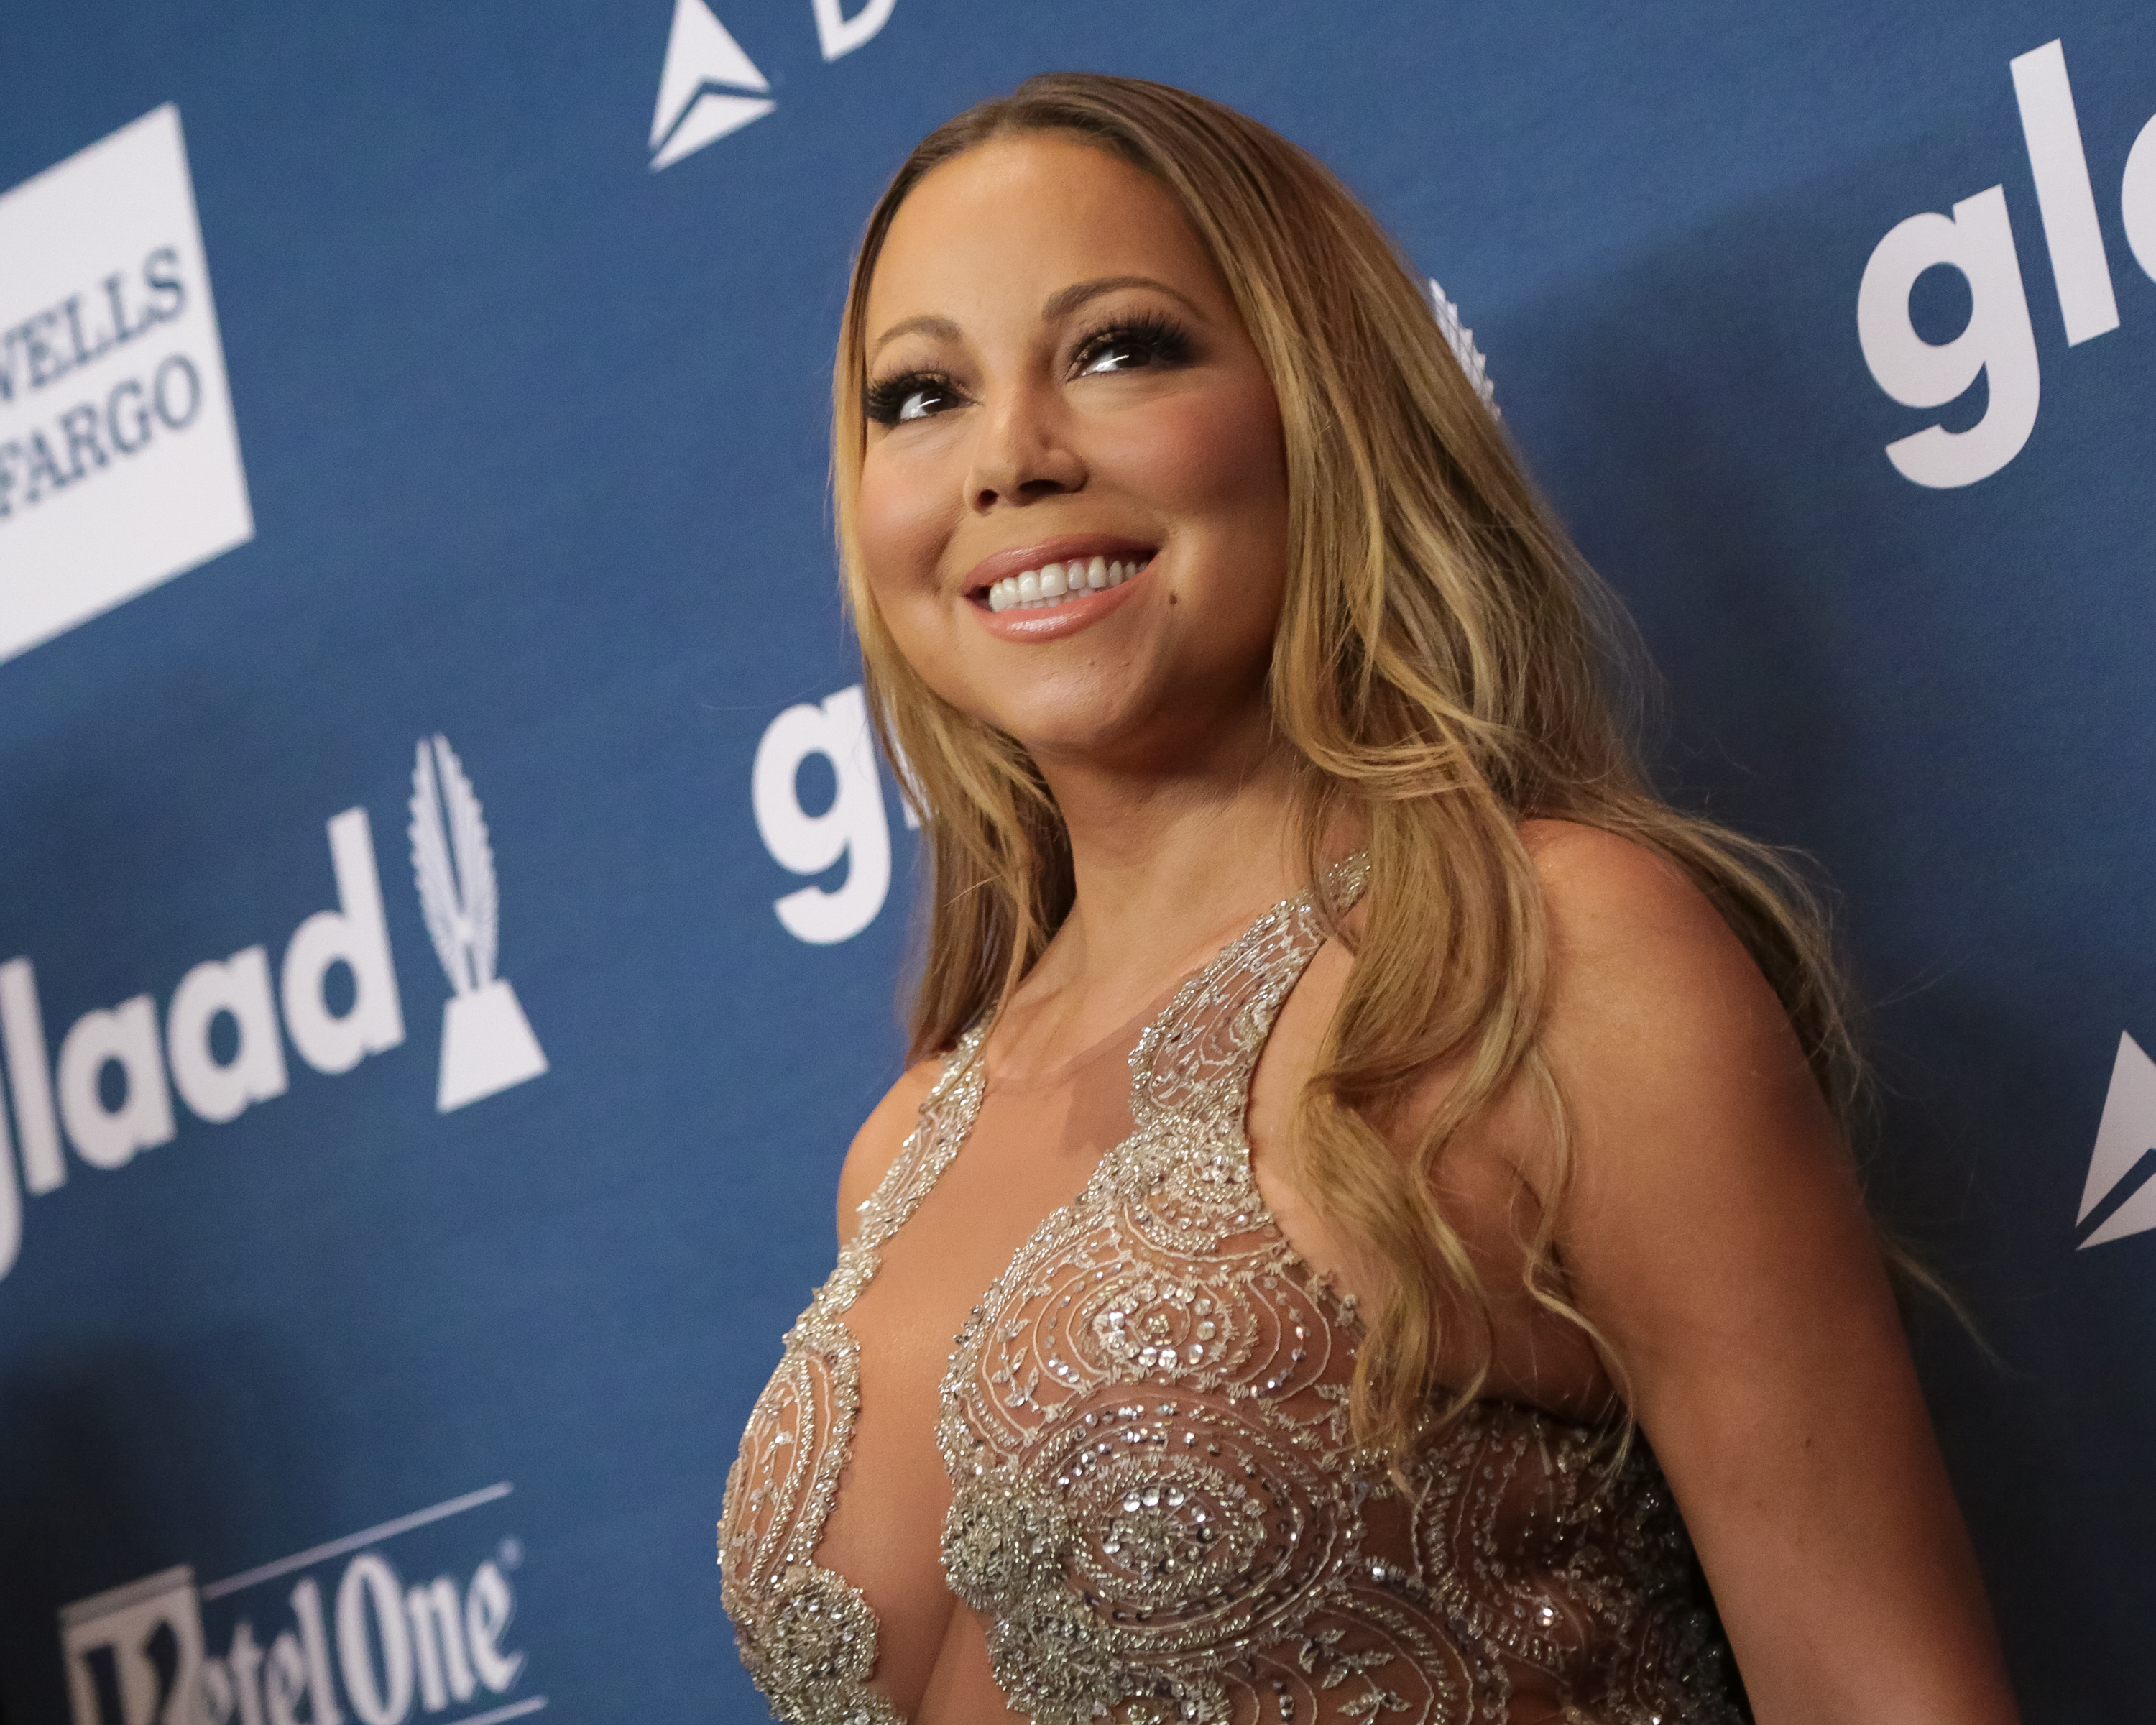 NEW YORK, NY - MAY 14: Recording artist/Ally Award recipient Mariah Carey attends the 27th Annual GLAAD Media Awards held at The Waldorf=Astoria on May 14, 2016 in New York City. (Photo by Brent N. Clarke/FilmMagic)